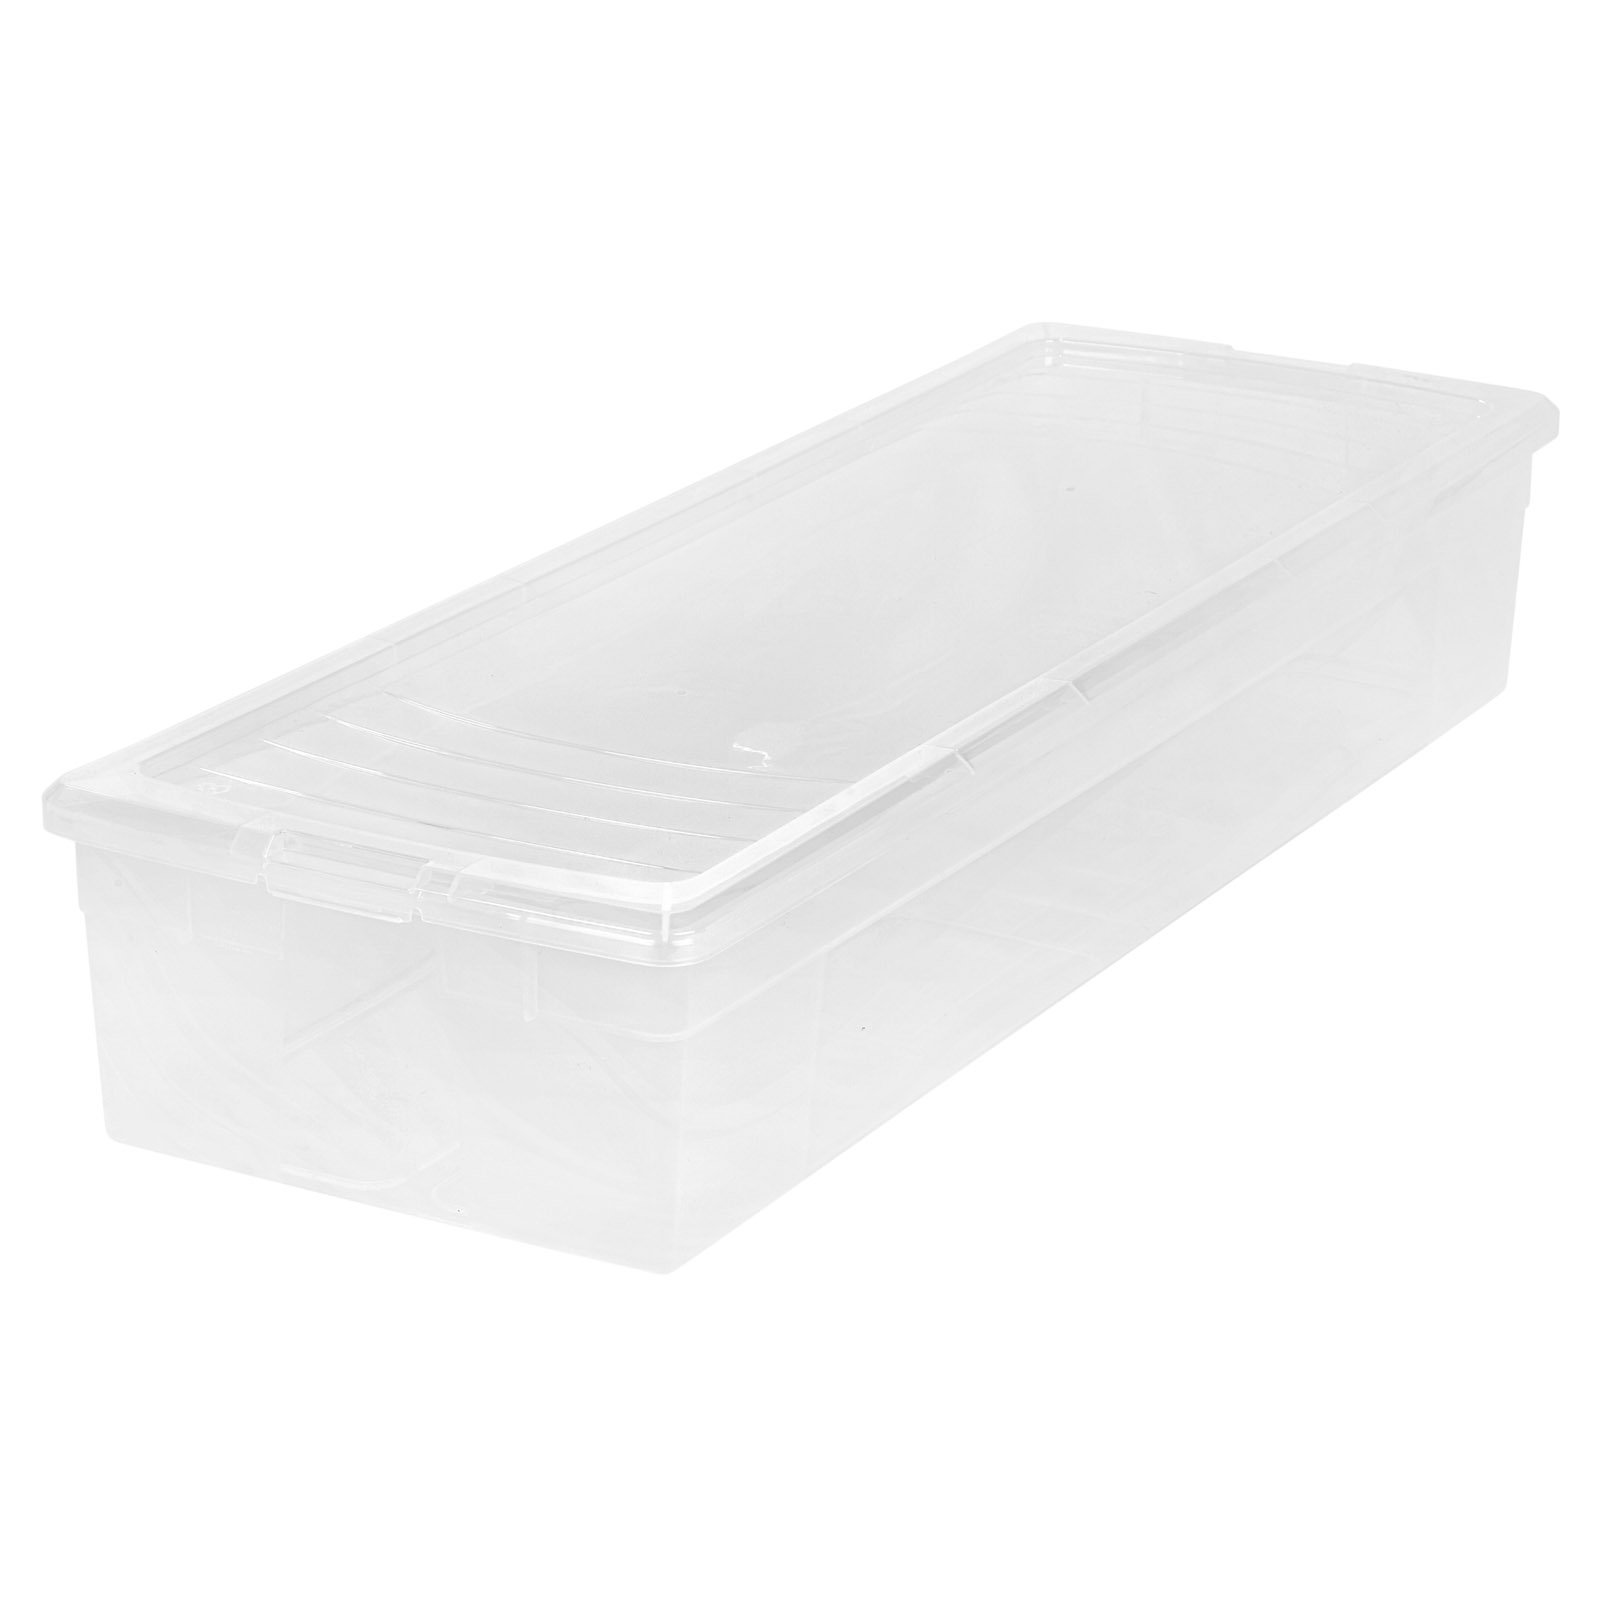 IRIS 30 Inch Wrapping Paper Storage Box, Clear - Walmart.com